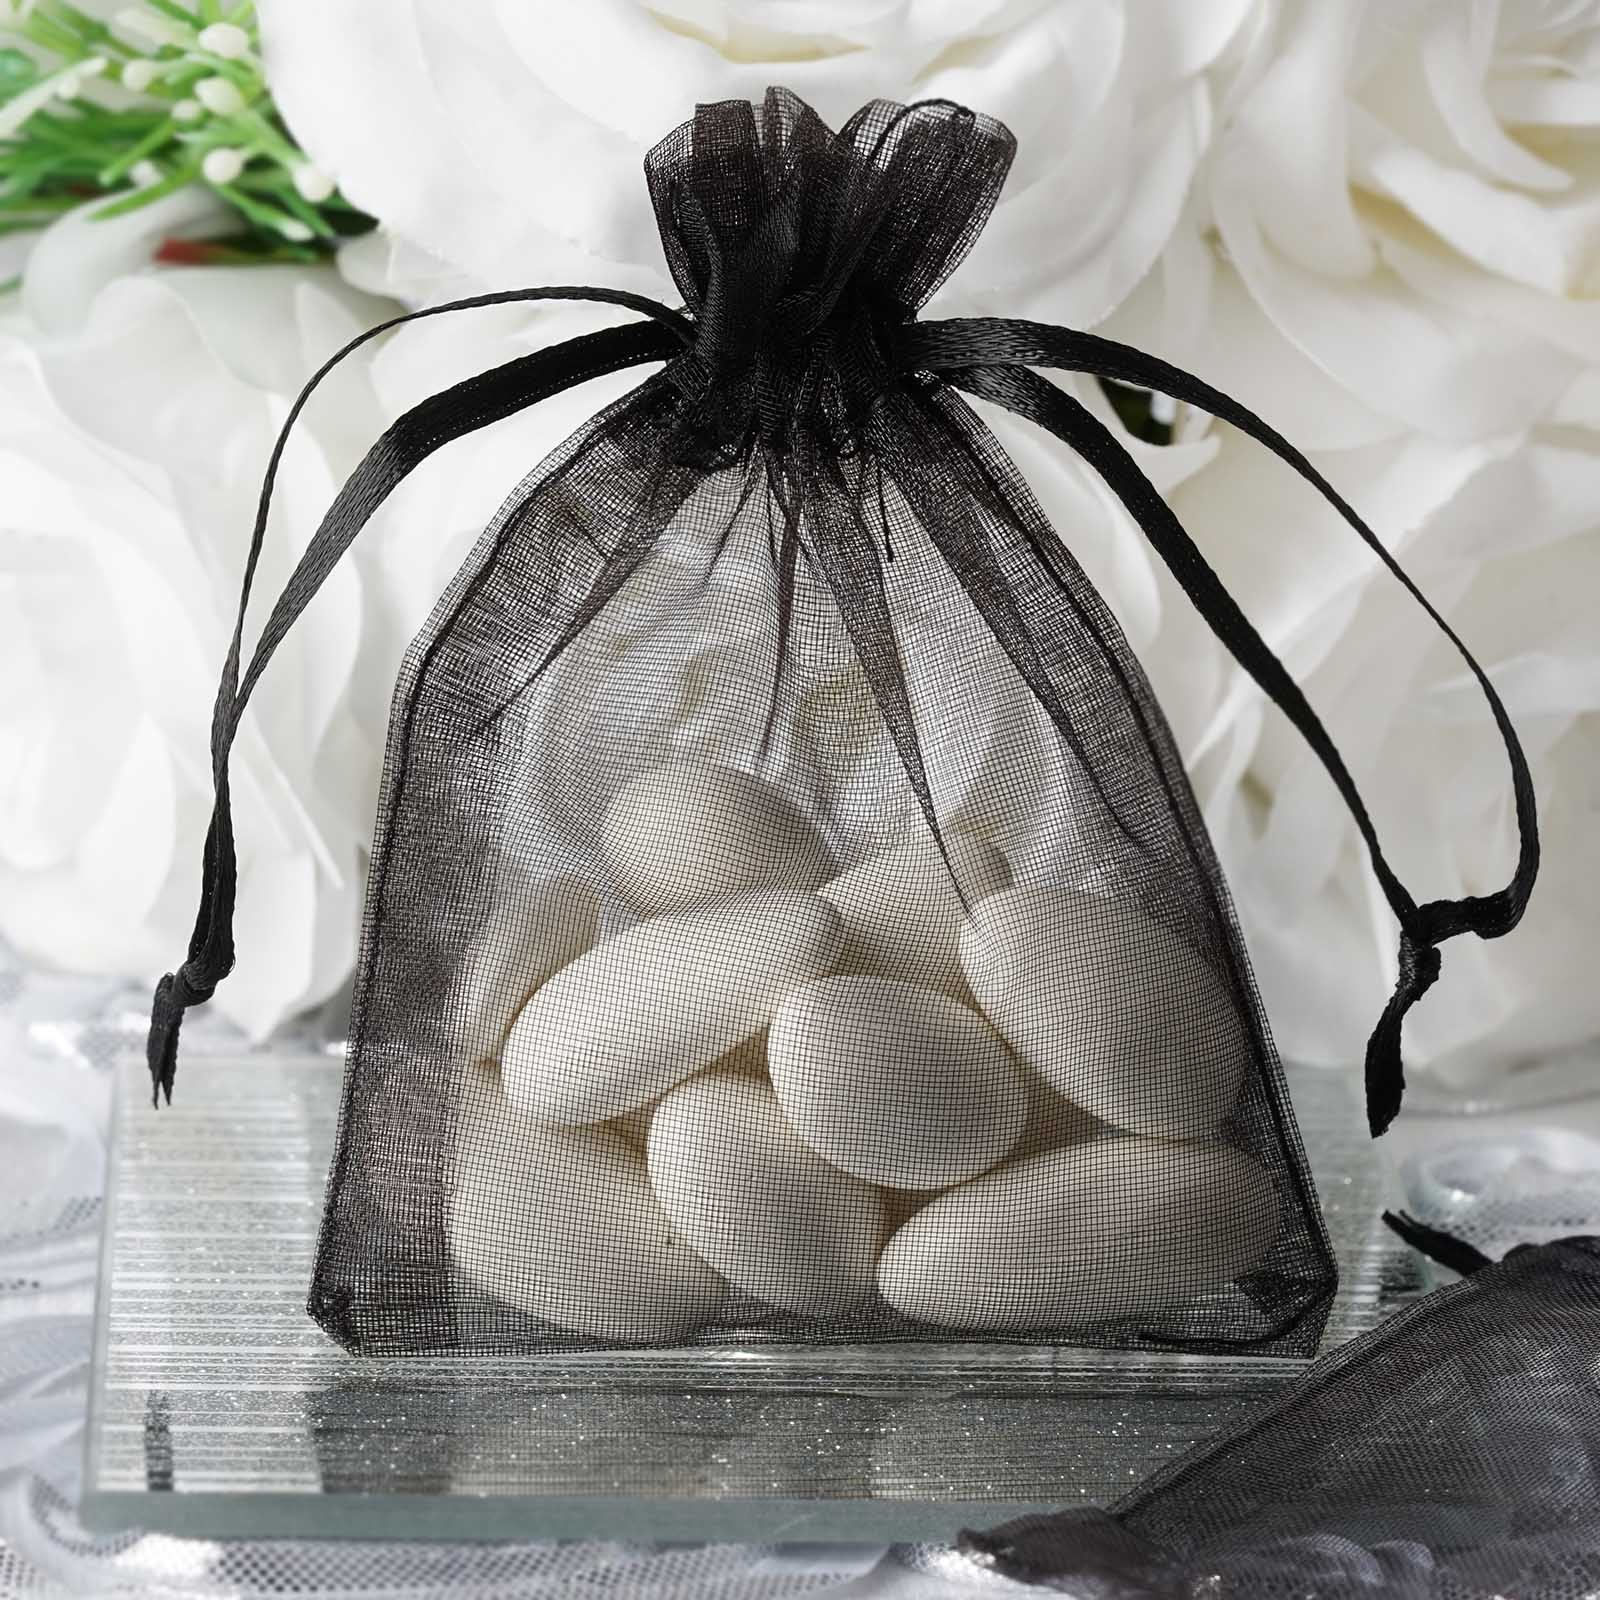 """Efavormart 50PCS Organza Gift Bag Drawstring Pouch for Wedding Party Favor Jewelry Candy Sheer Organza Bags - 3""""x4"""""""